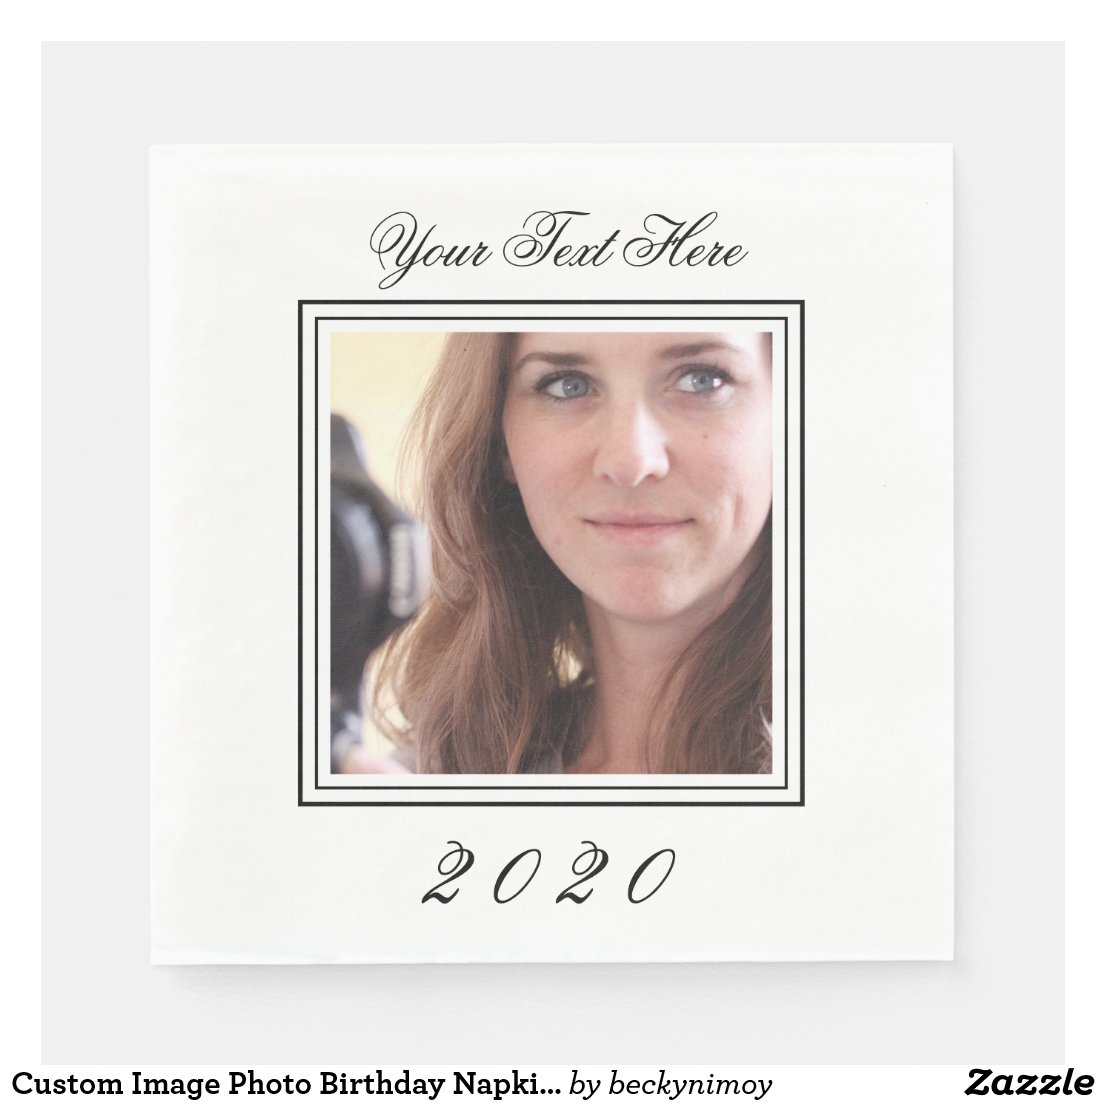 Custom Image Photo Birthday Napkins